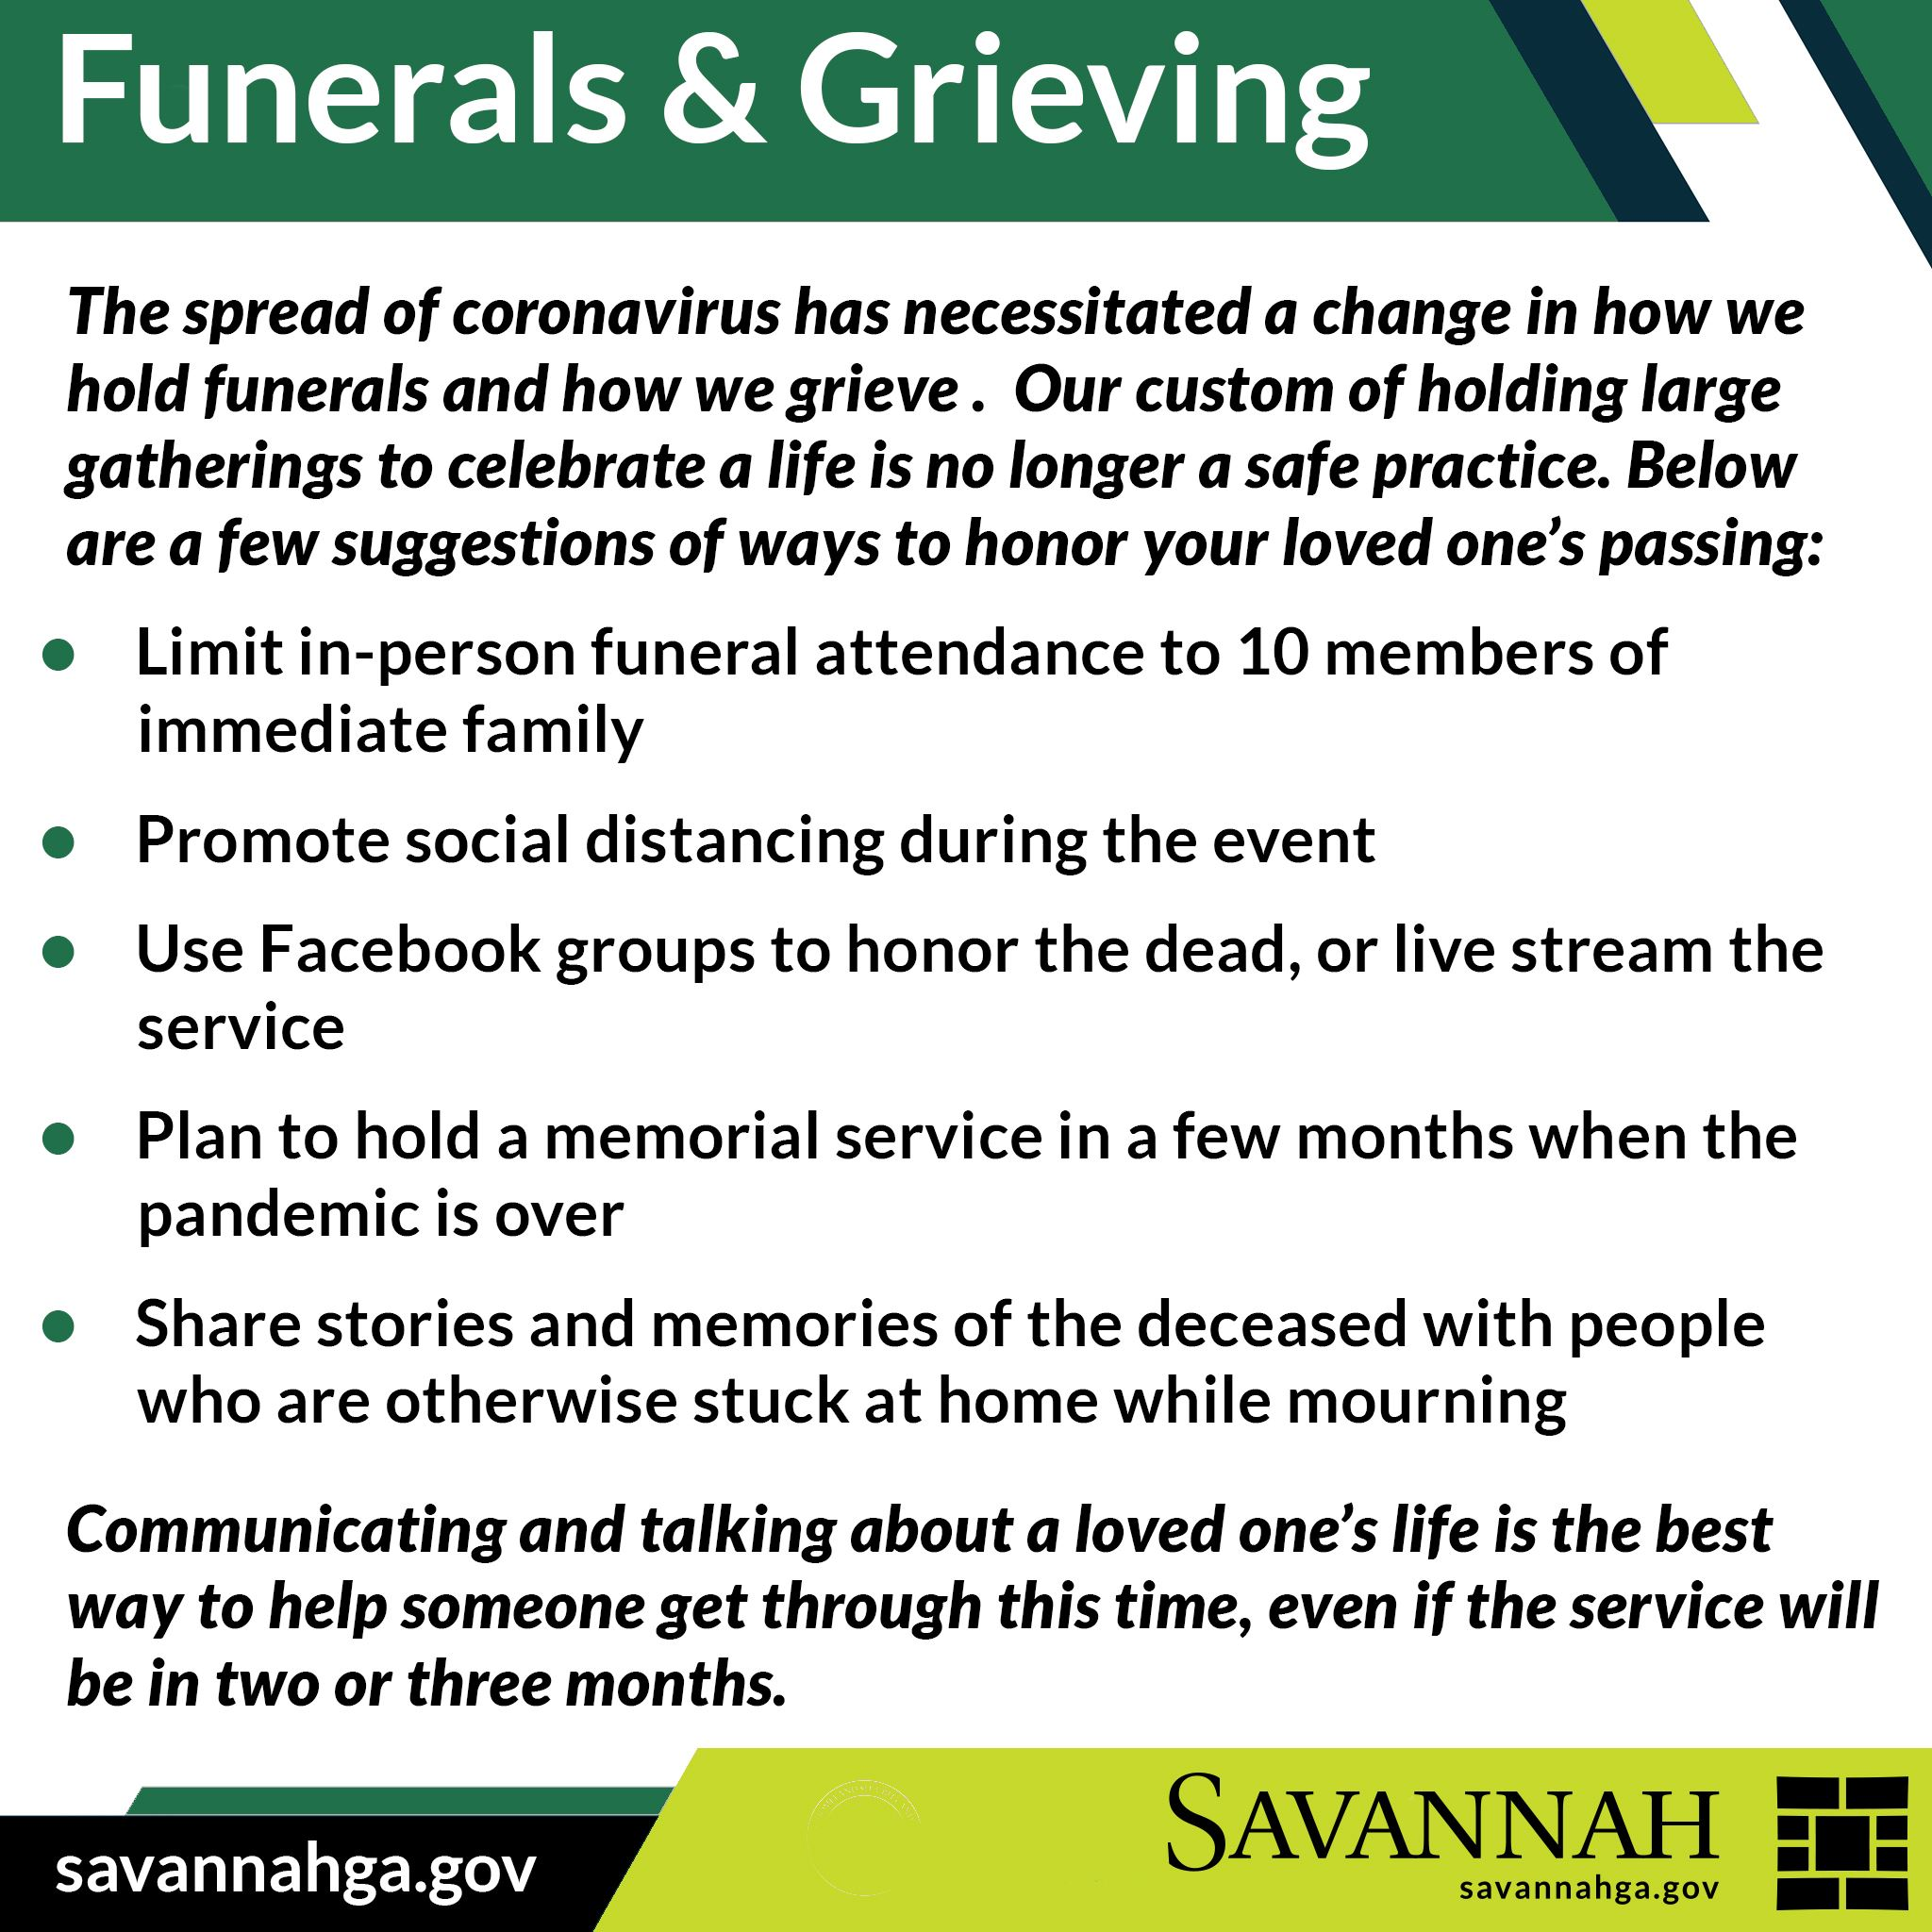 Funerals Grieving 03262020 Opens in new window